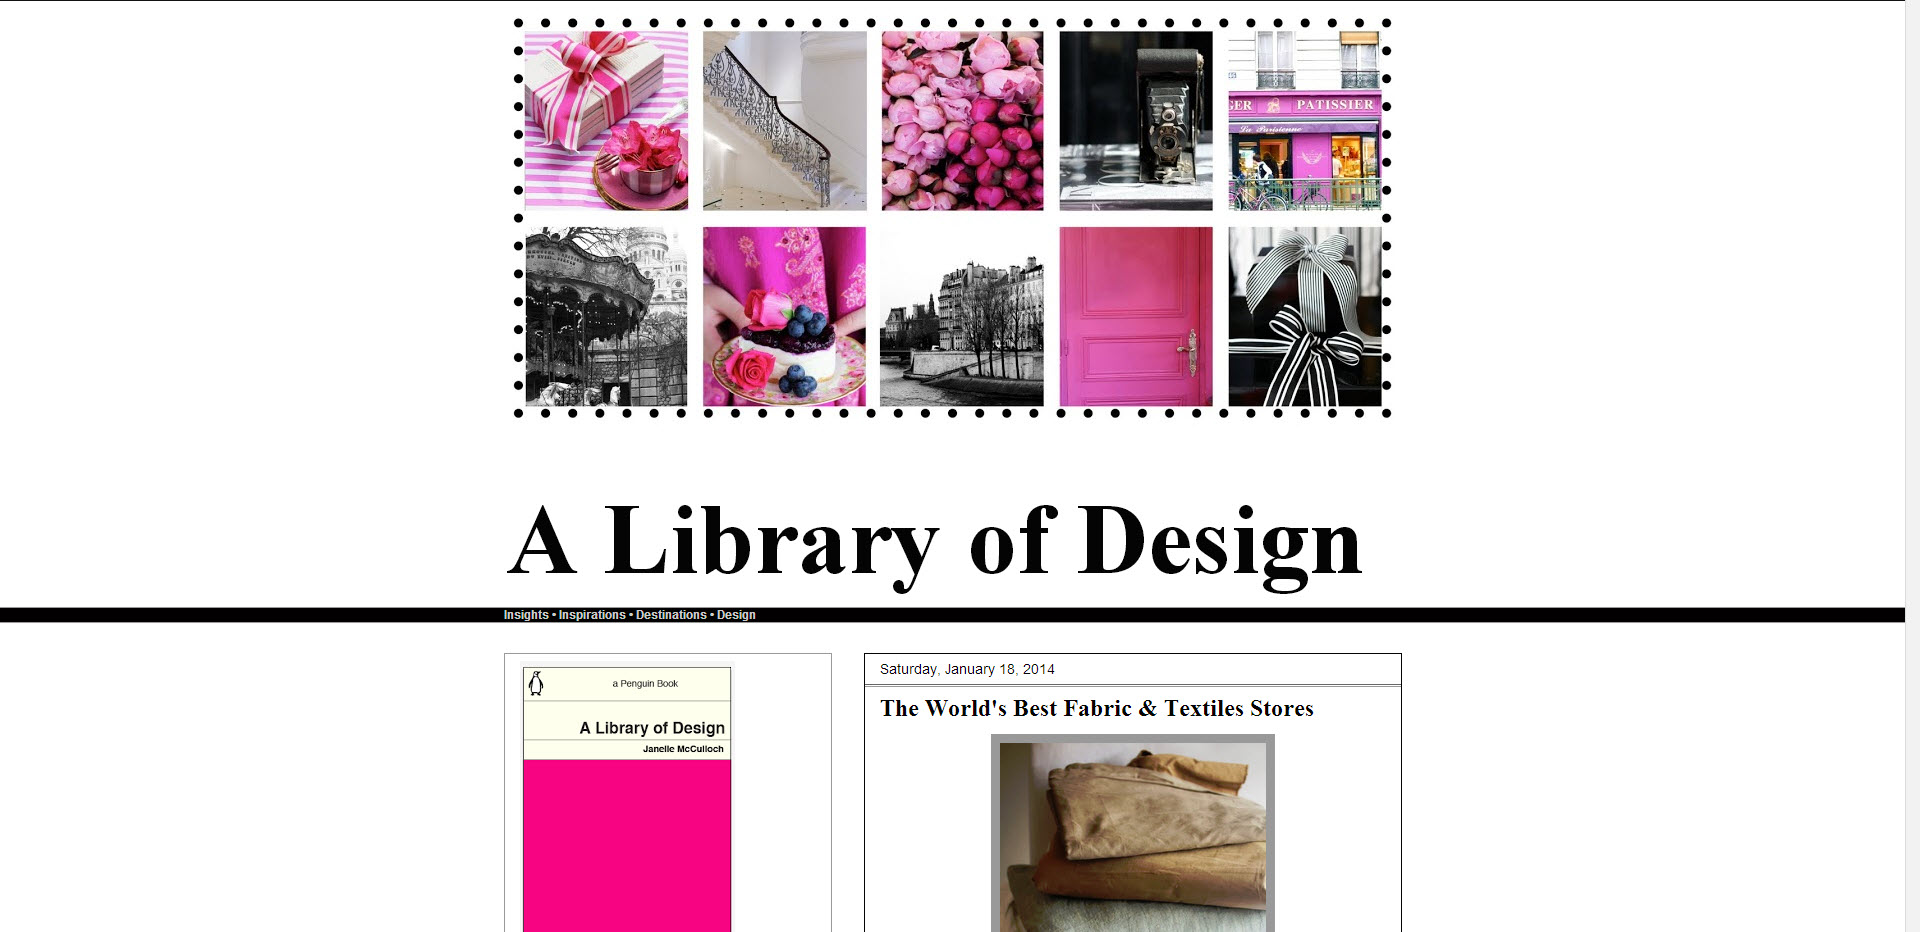 A Library of Design